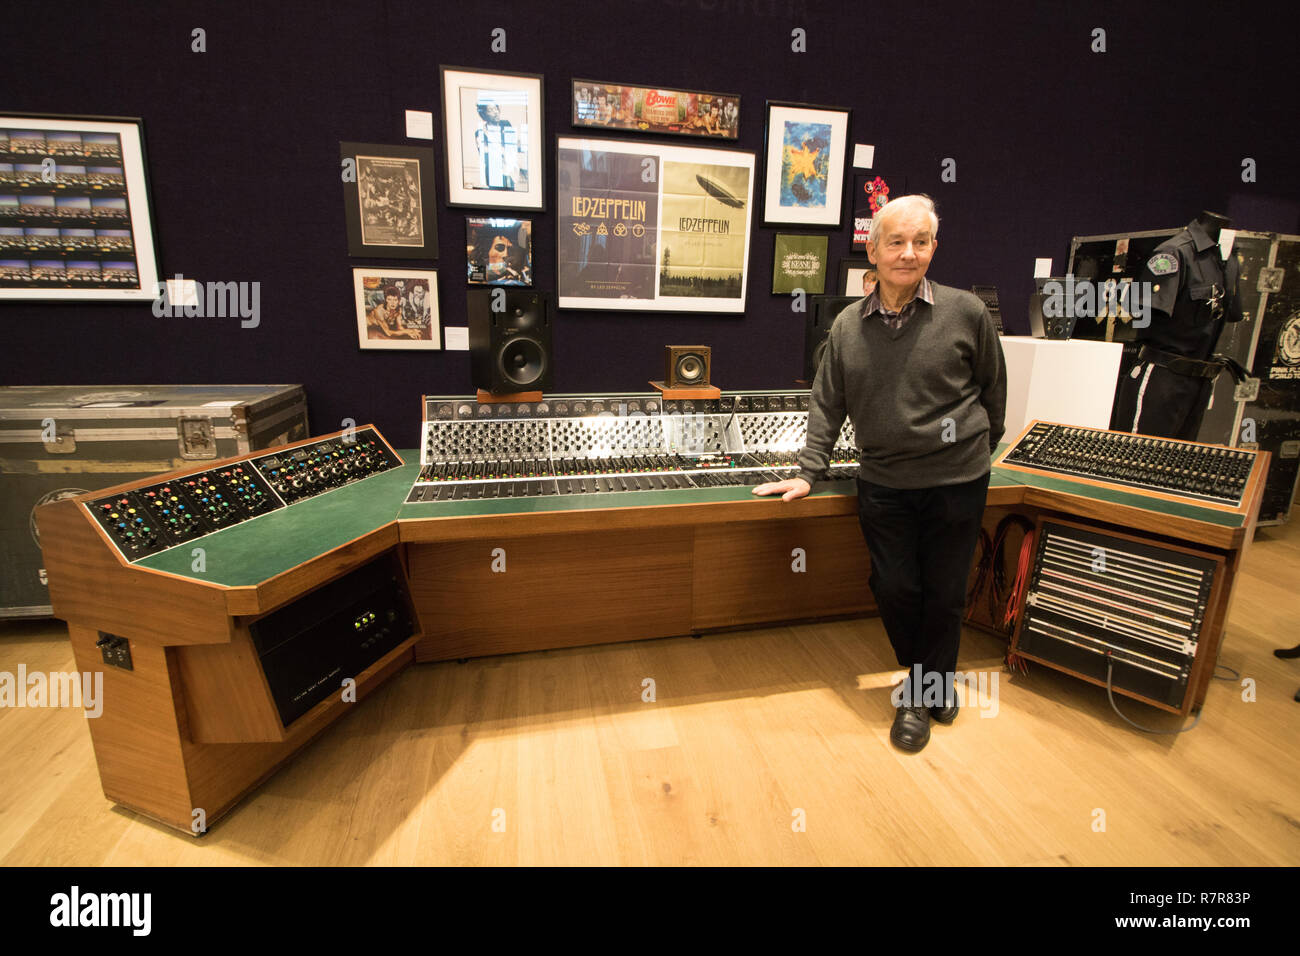 London UK. 11th December 2018. Unique Helios Centric Console used By Rock Music Legends, Led Zeppelin, Bob Marley, David Bowie, Eric Clapton, George Harrison, Rolling Stones, Paul Weller, Jimi Hendrix and other celebrity users. Credit: amer ghazzal/Alamy Live News - Stock Image